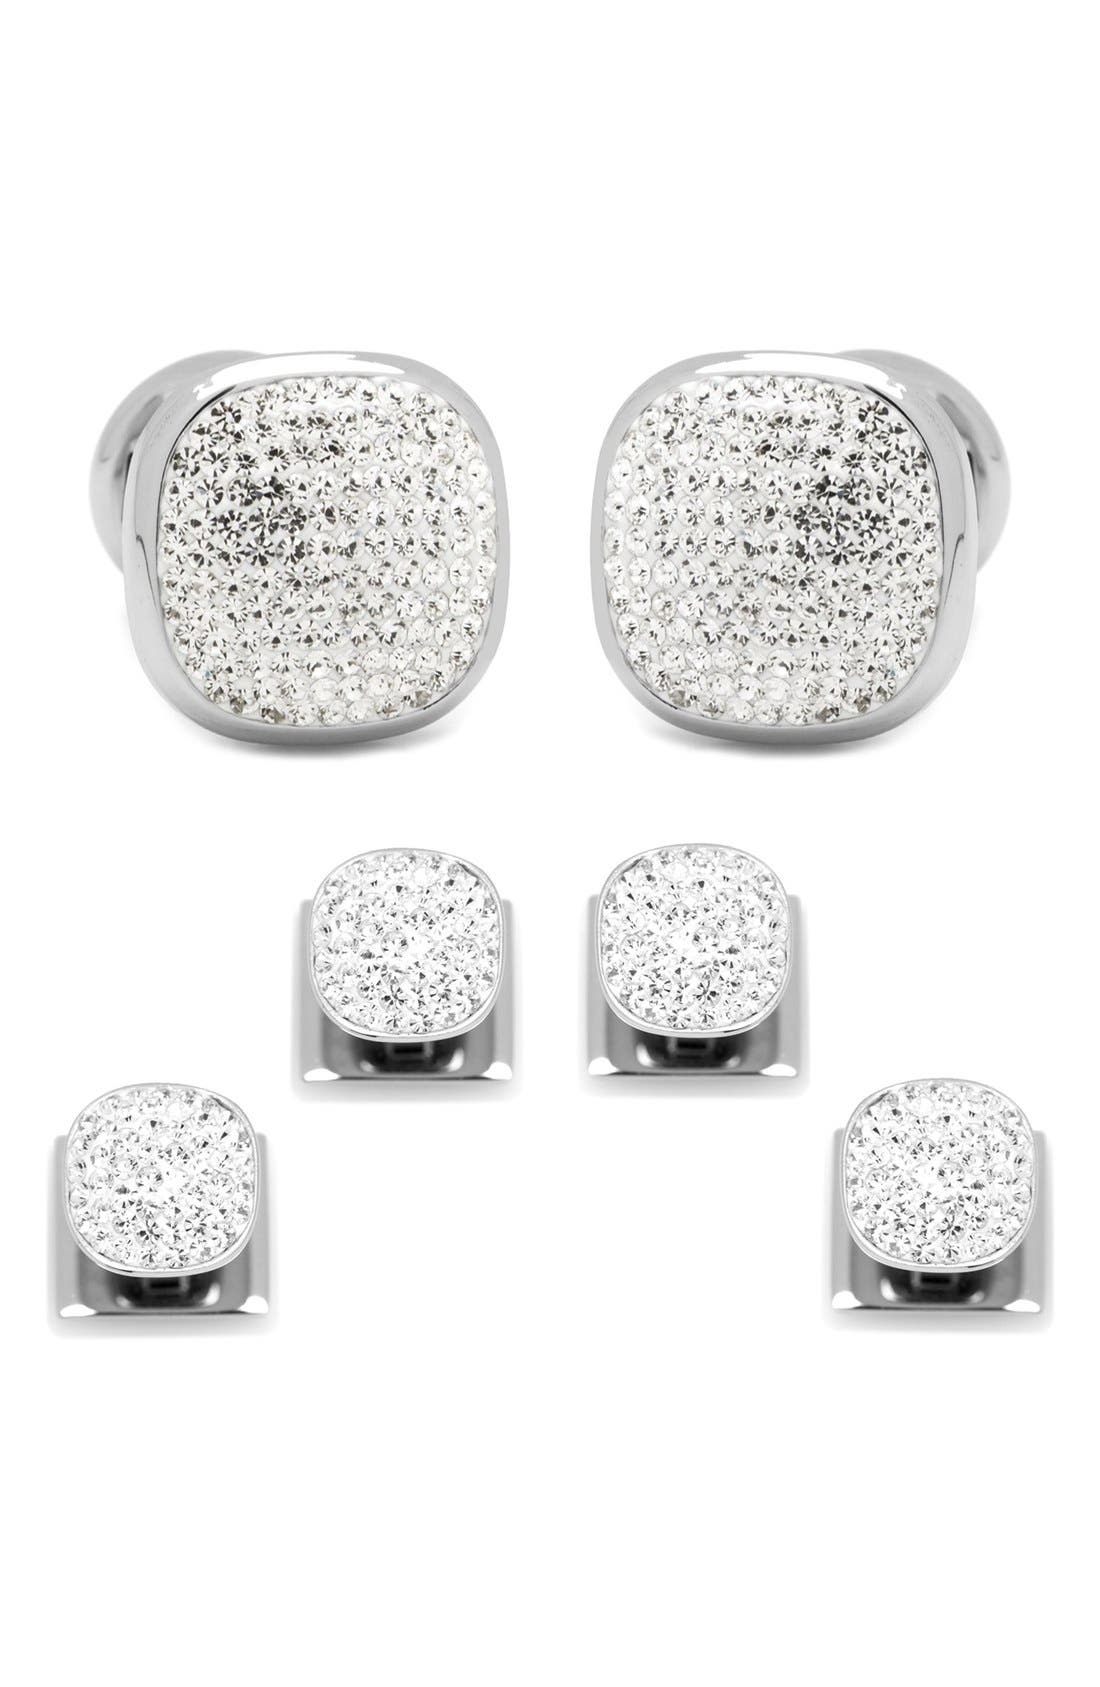 White Pave Crystal Shirt Studs & Cuff Links,                             Main thumbnail 1, color,                             WHITE